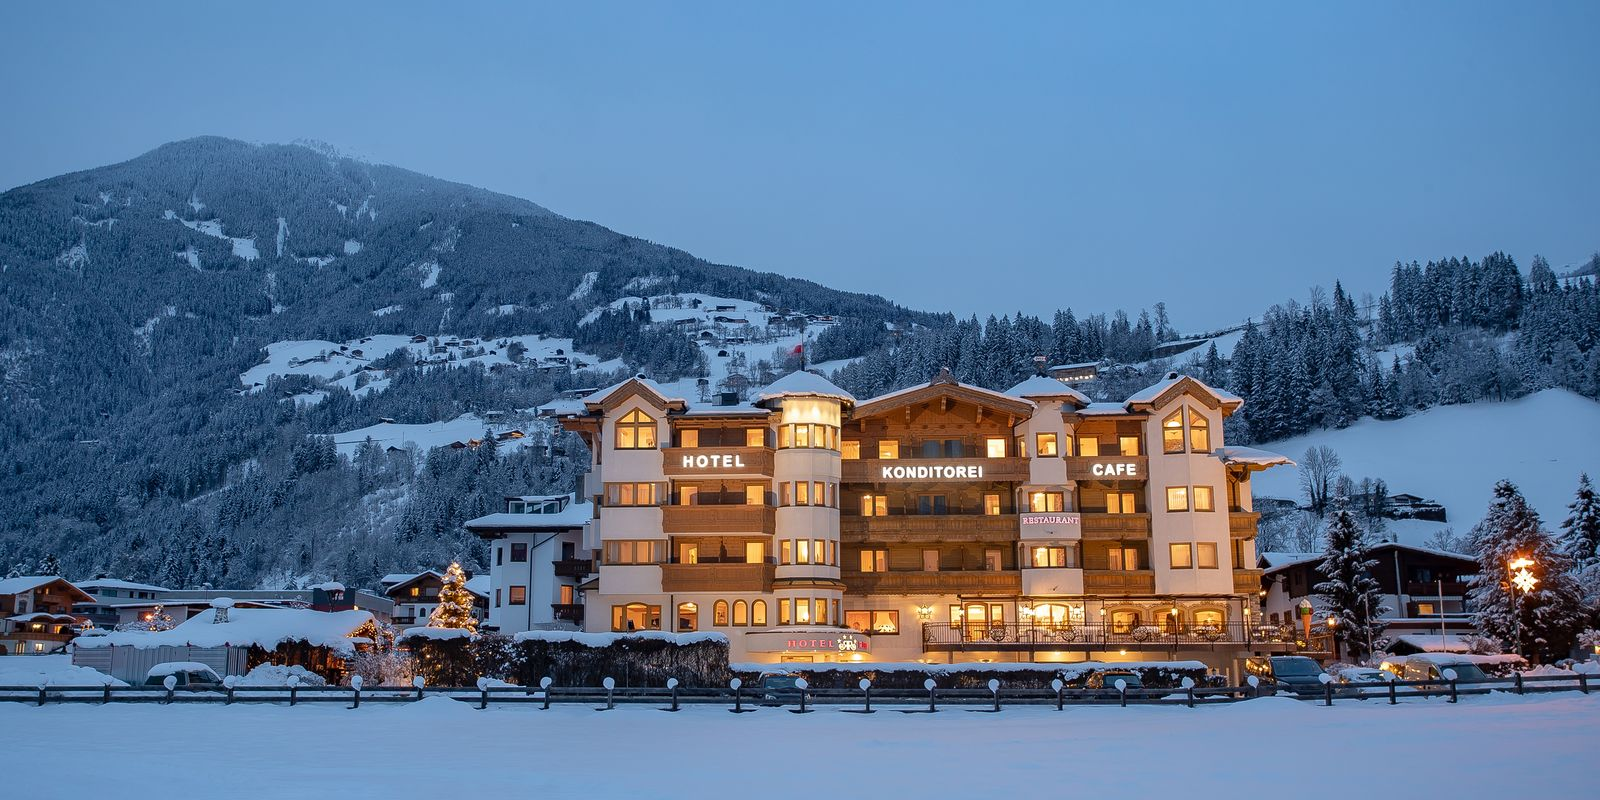 Hotel Riedl in winter